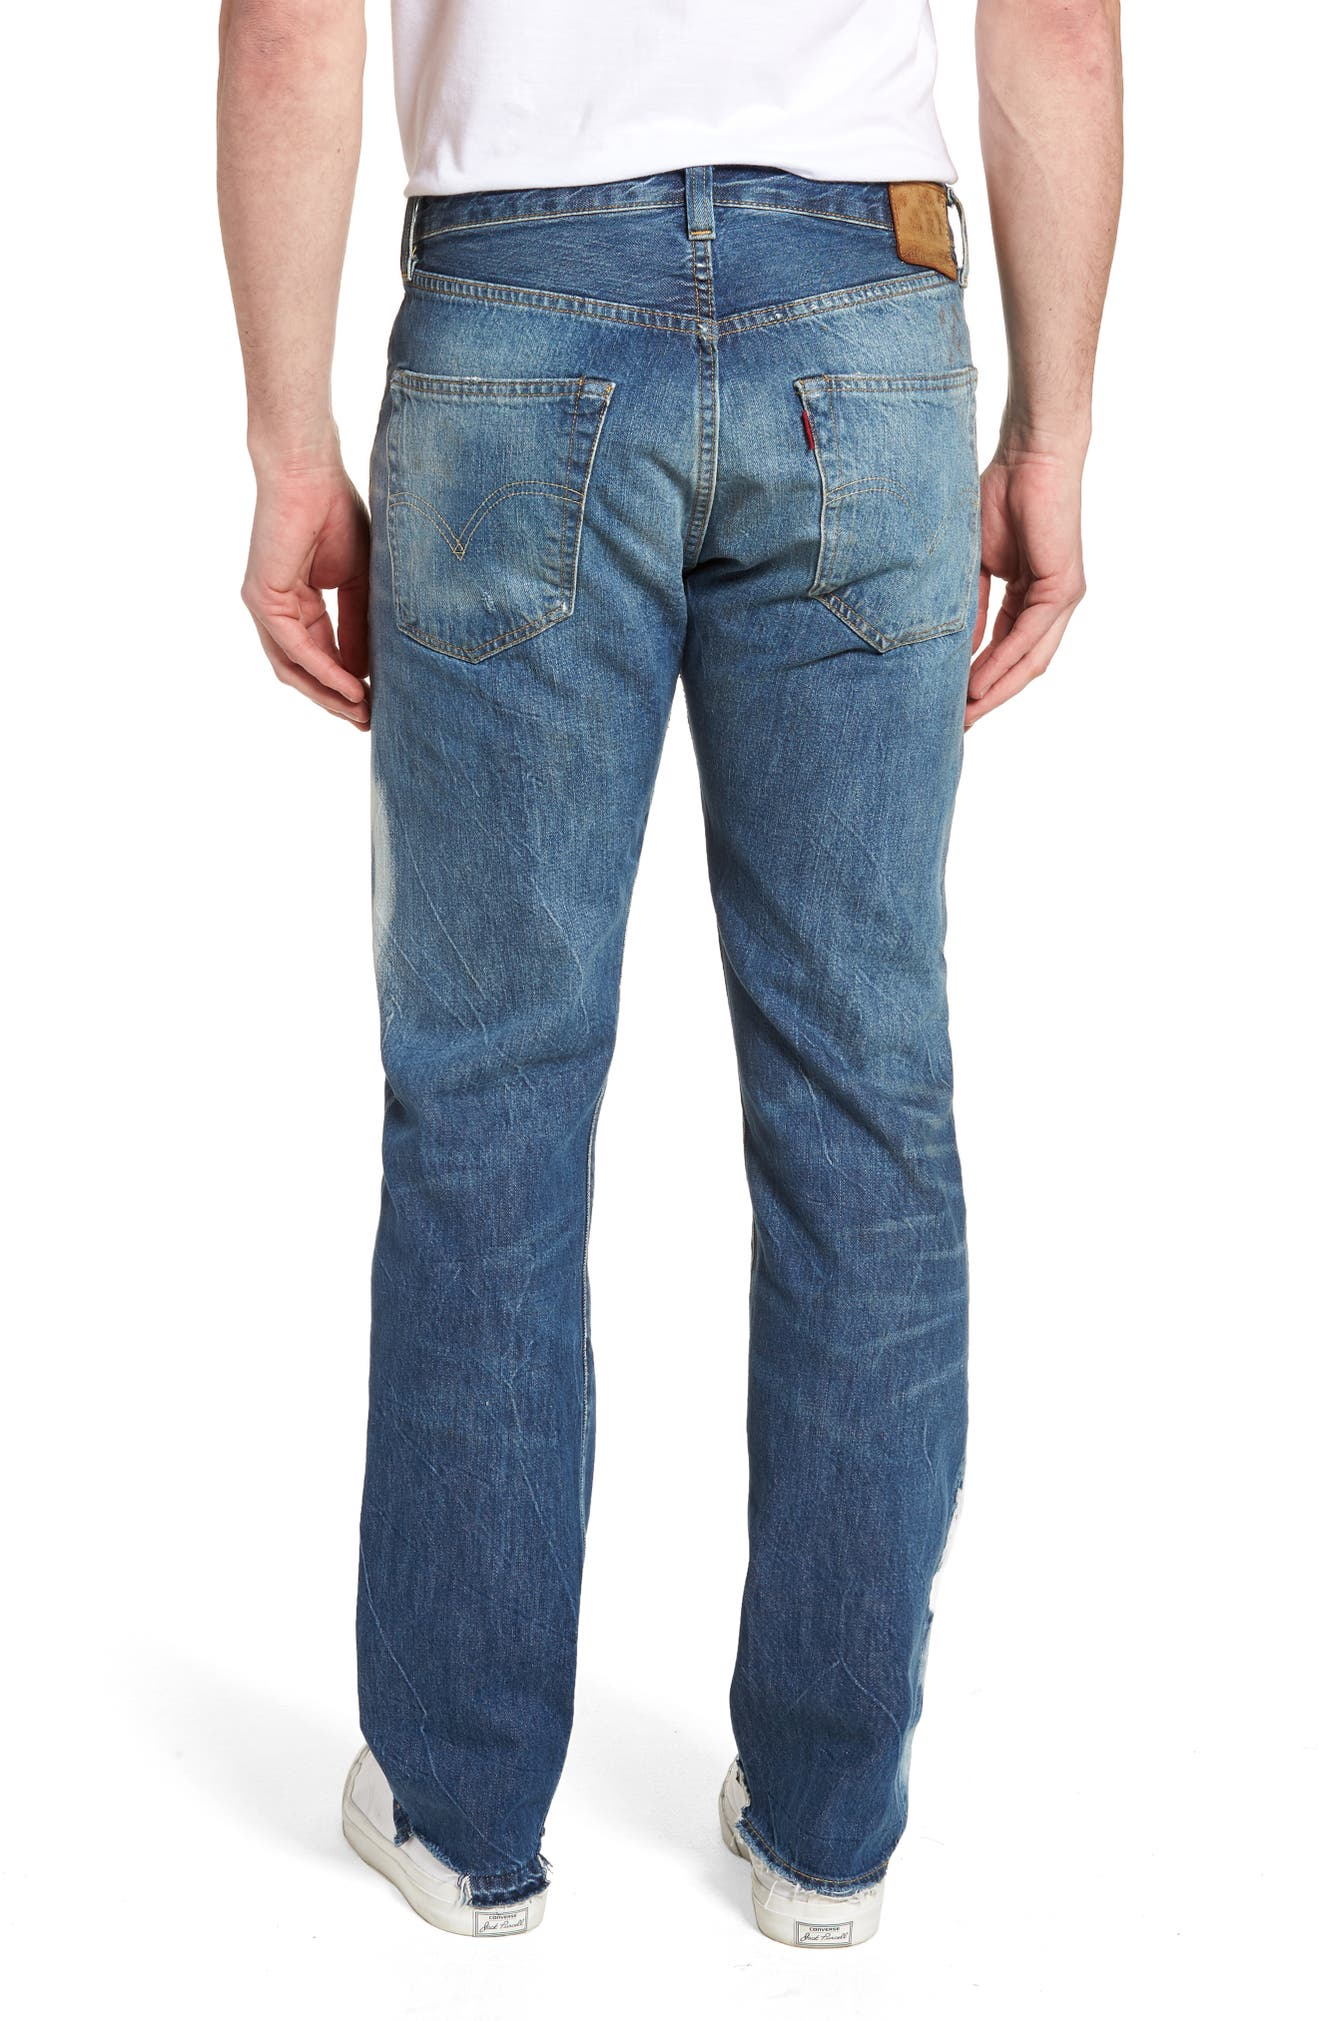 0d318b4c Levi's® Vintage Clothing 1947 501® Tapered Leg Jeans (Reef Break) |  Nordstrom